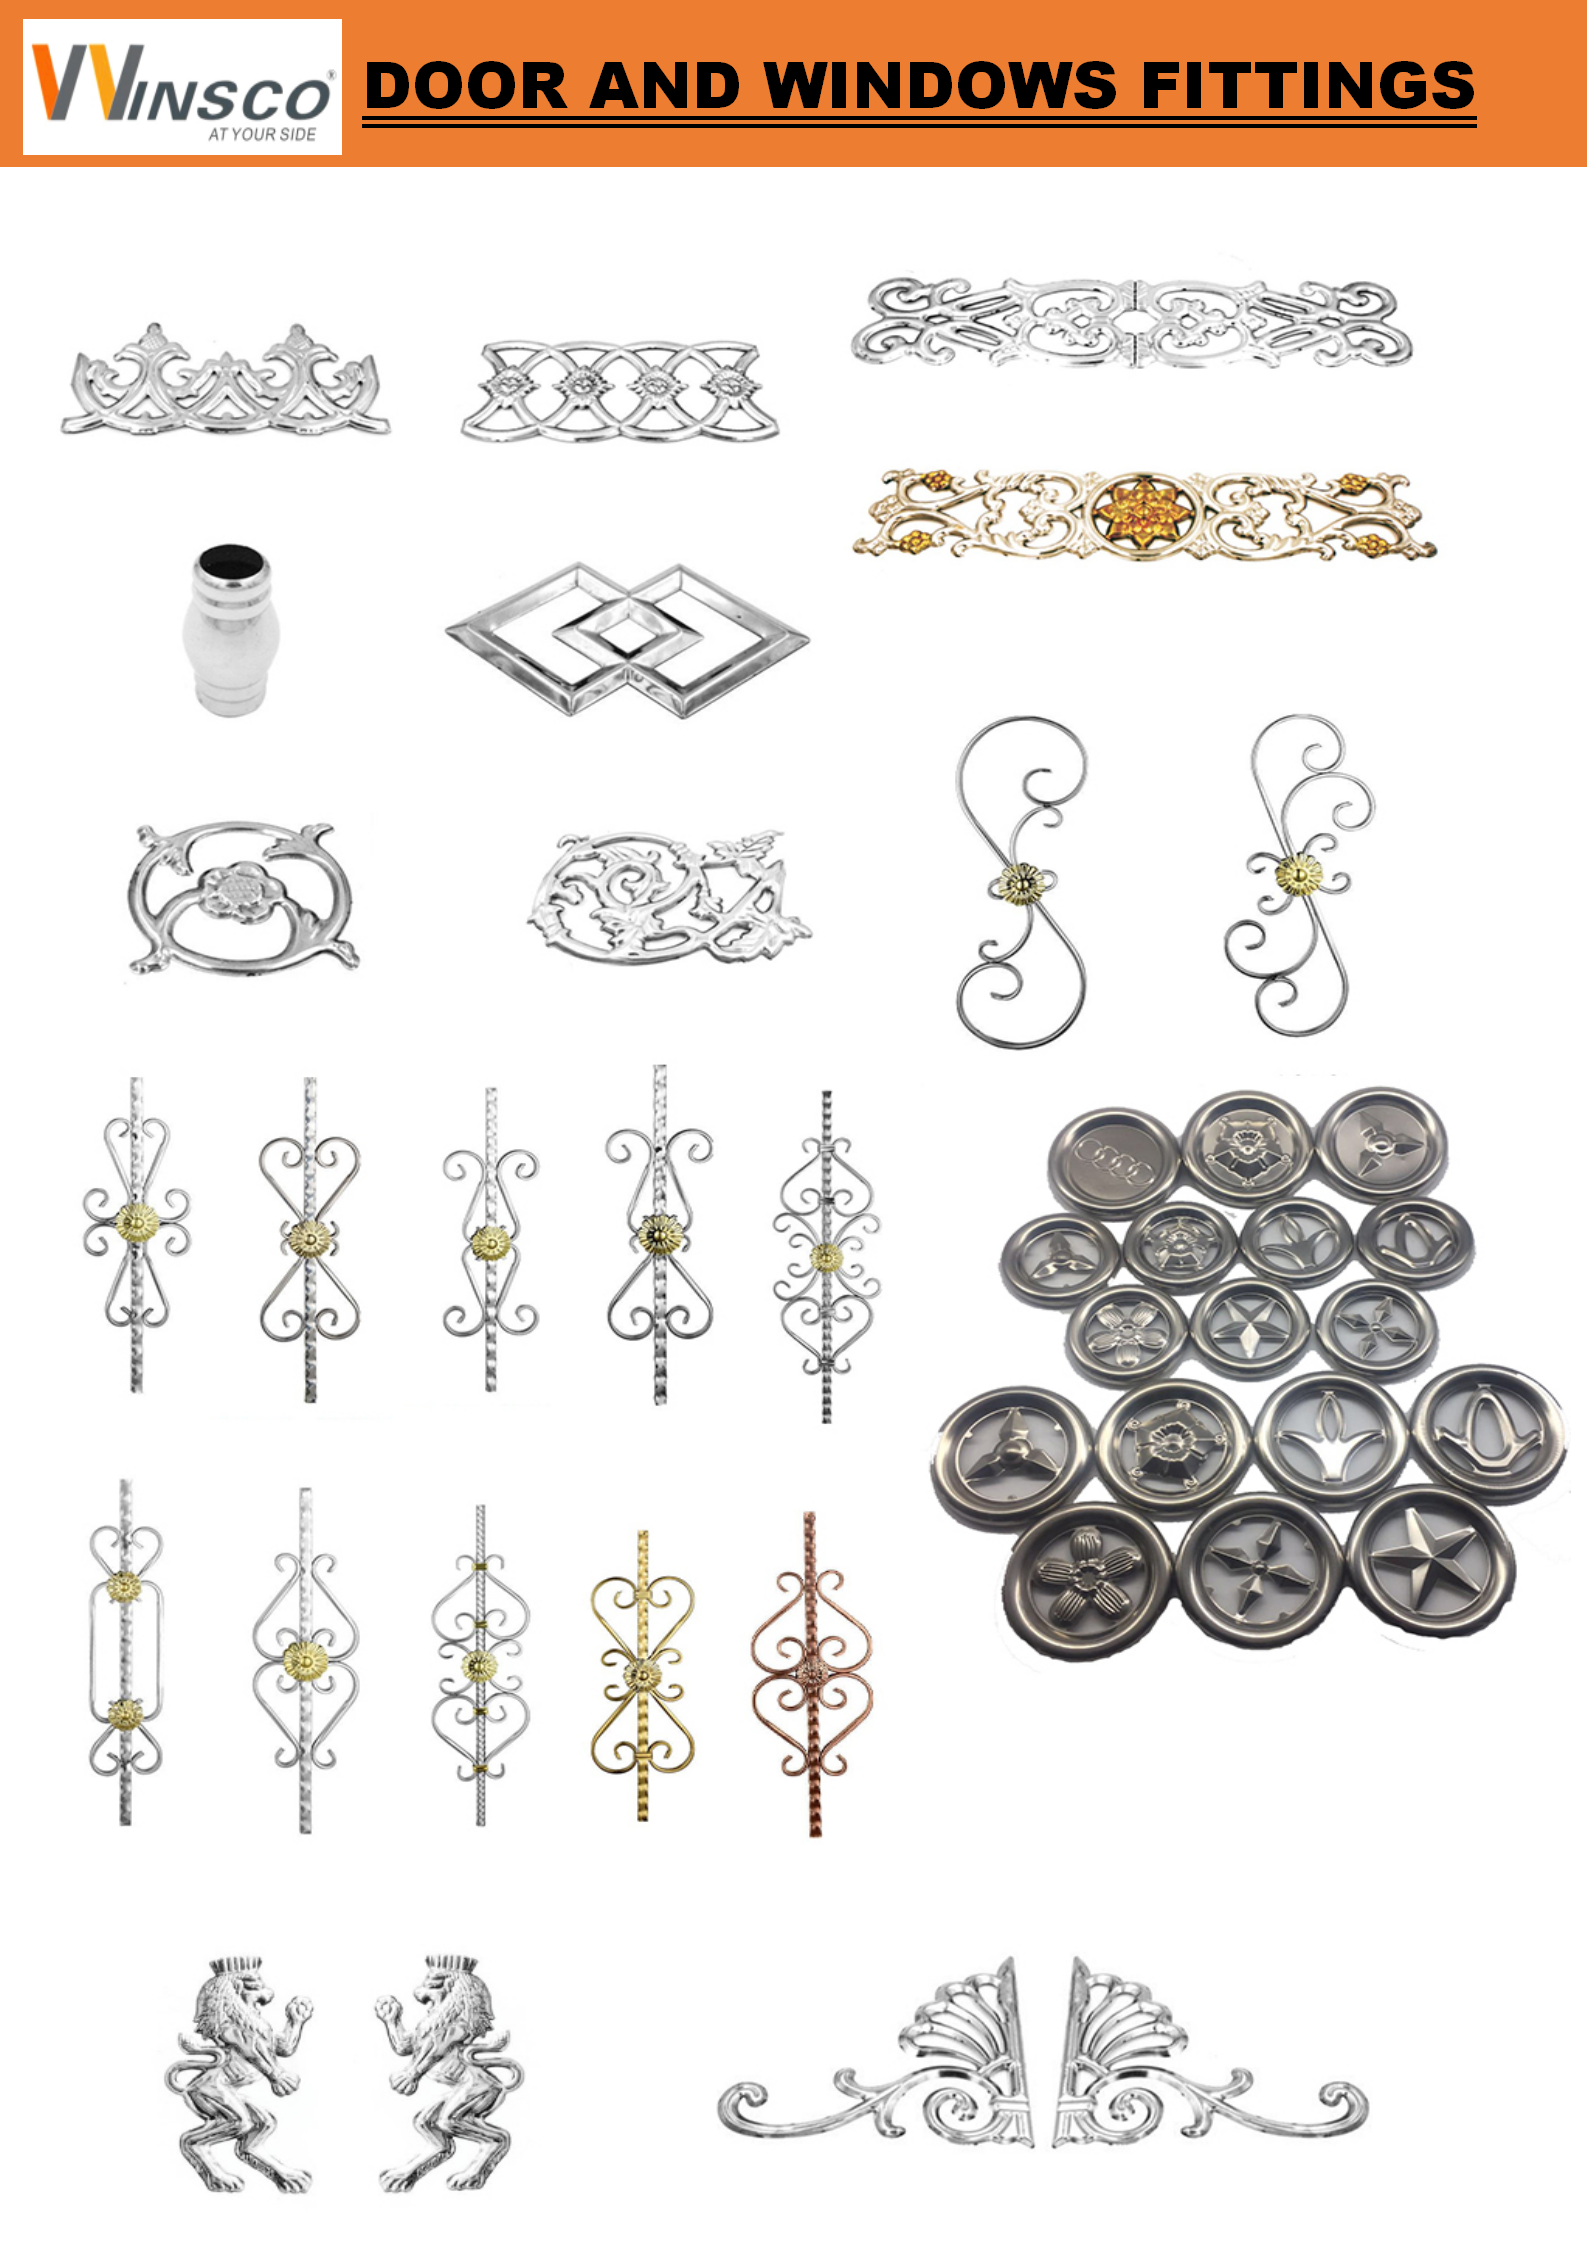 Classic stainless steel railing and gate or window grille decorative fittings